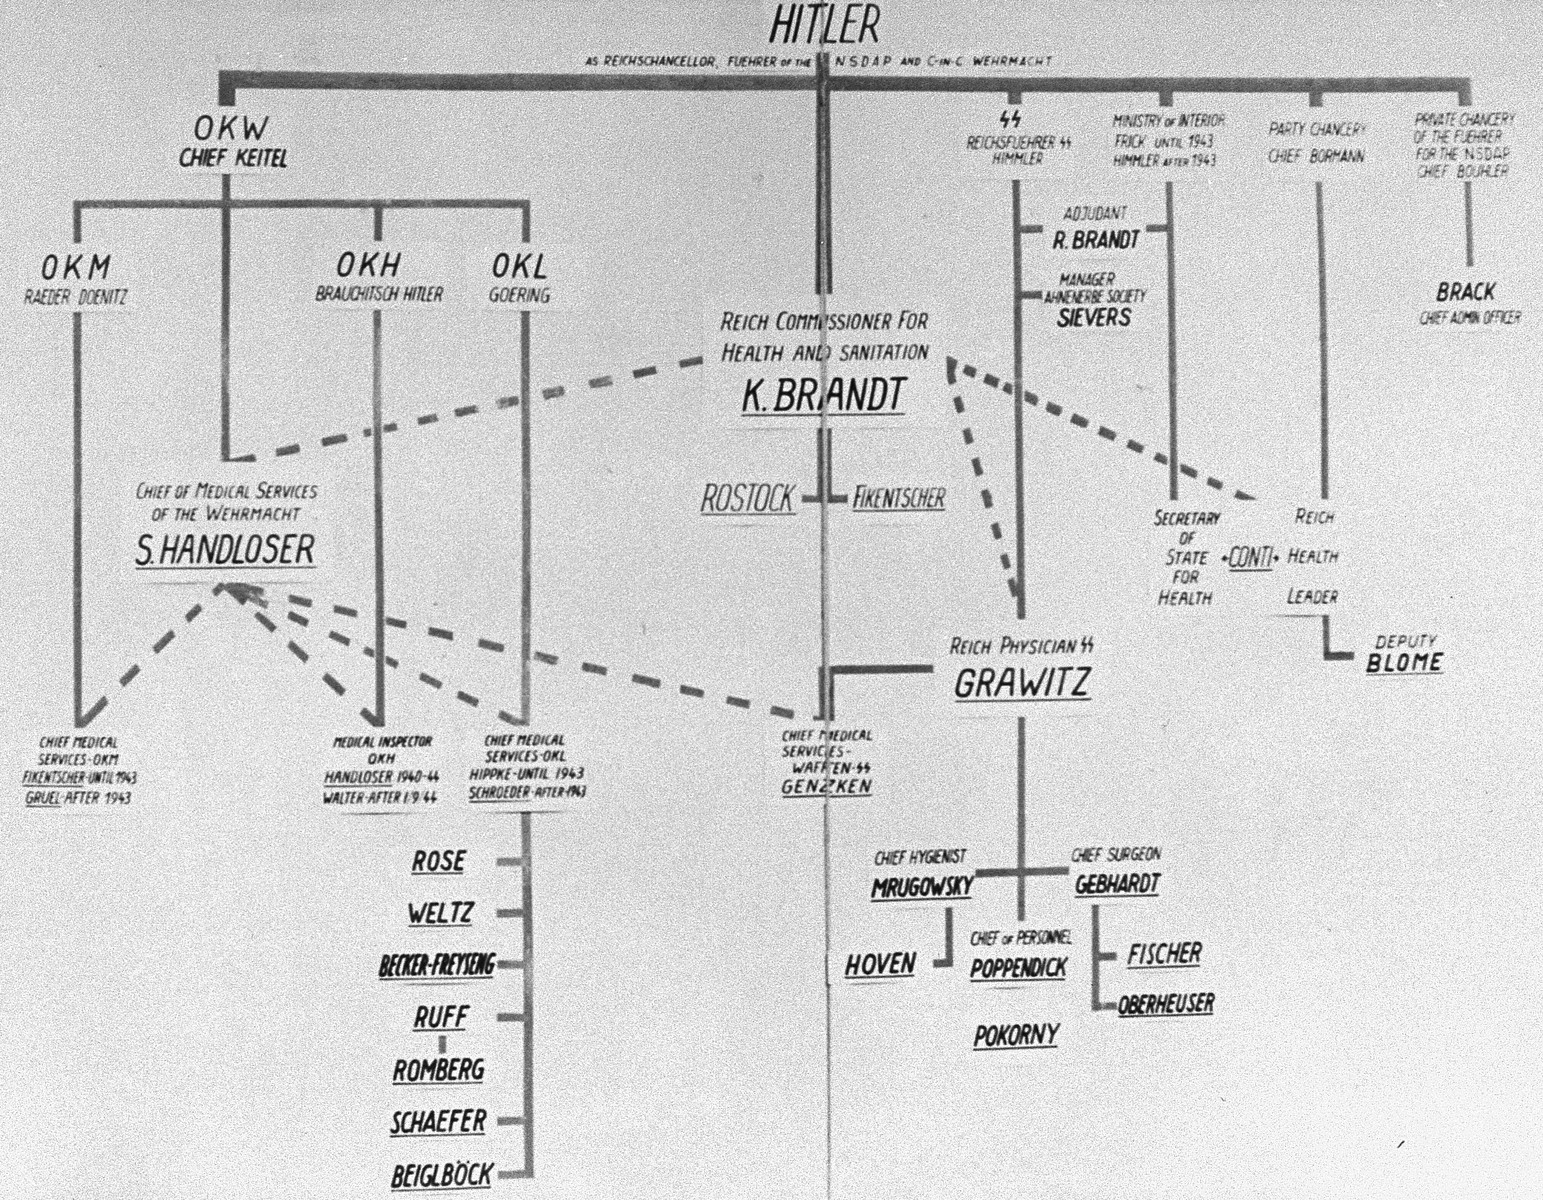 A diagram of the medical chain of command in the Third Reich, drawn up as evidence for the Medical Case (Doctors') Trial in Nuremberg.